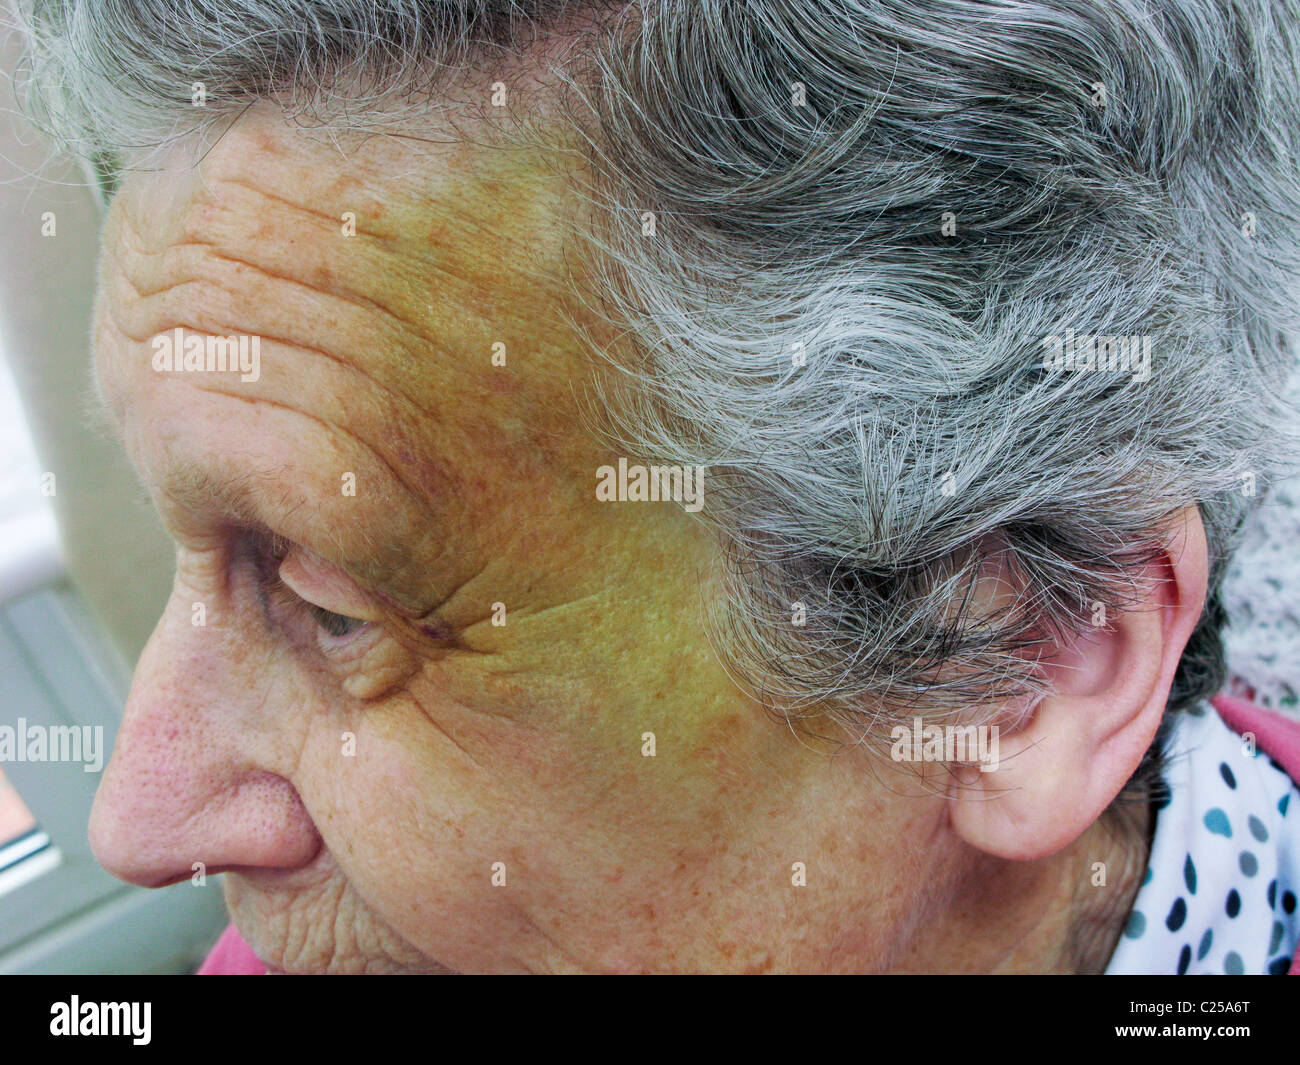 Old Face Bruising Stock Photos Old Face Bruising Stock Images Alamy